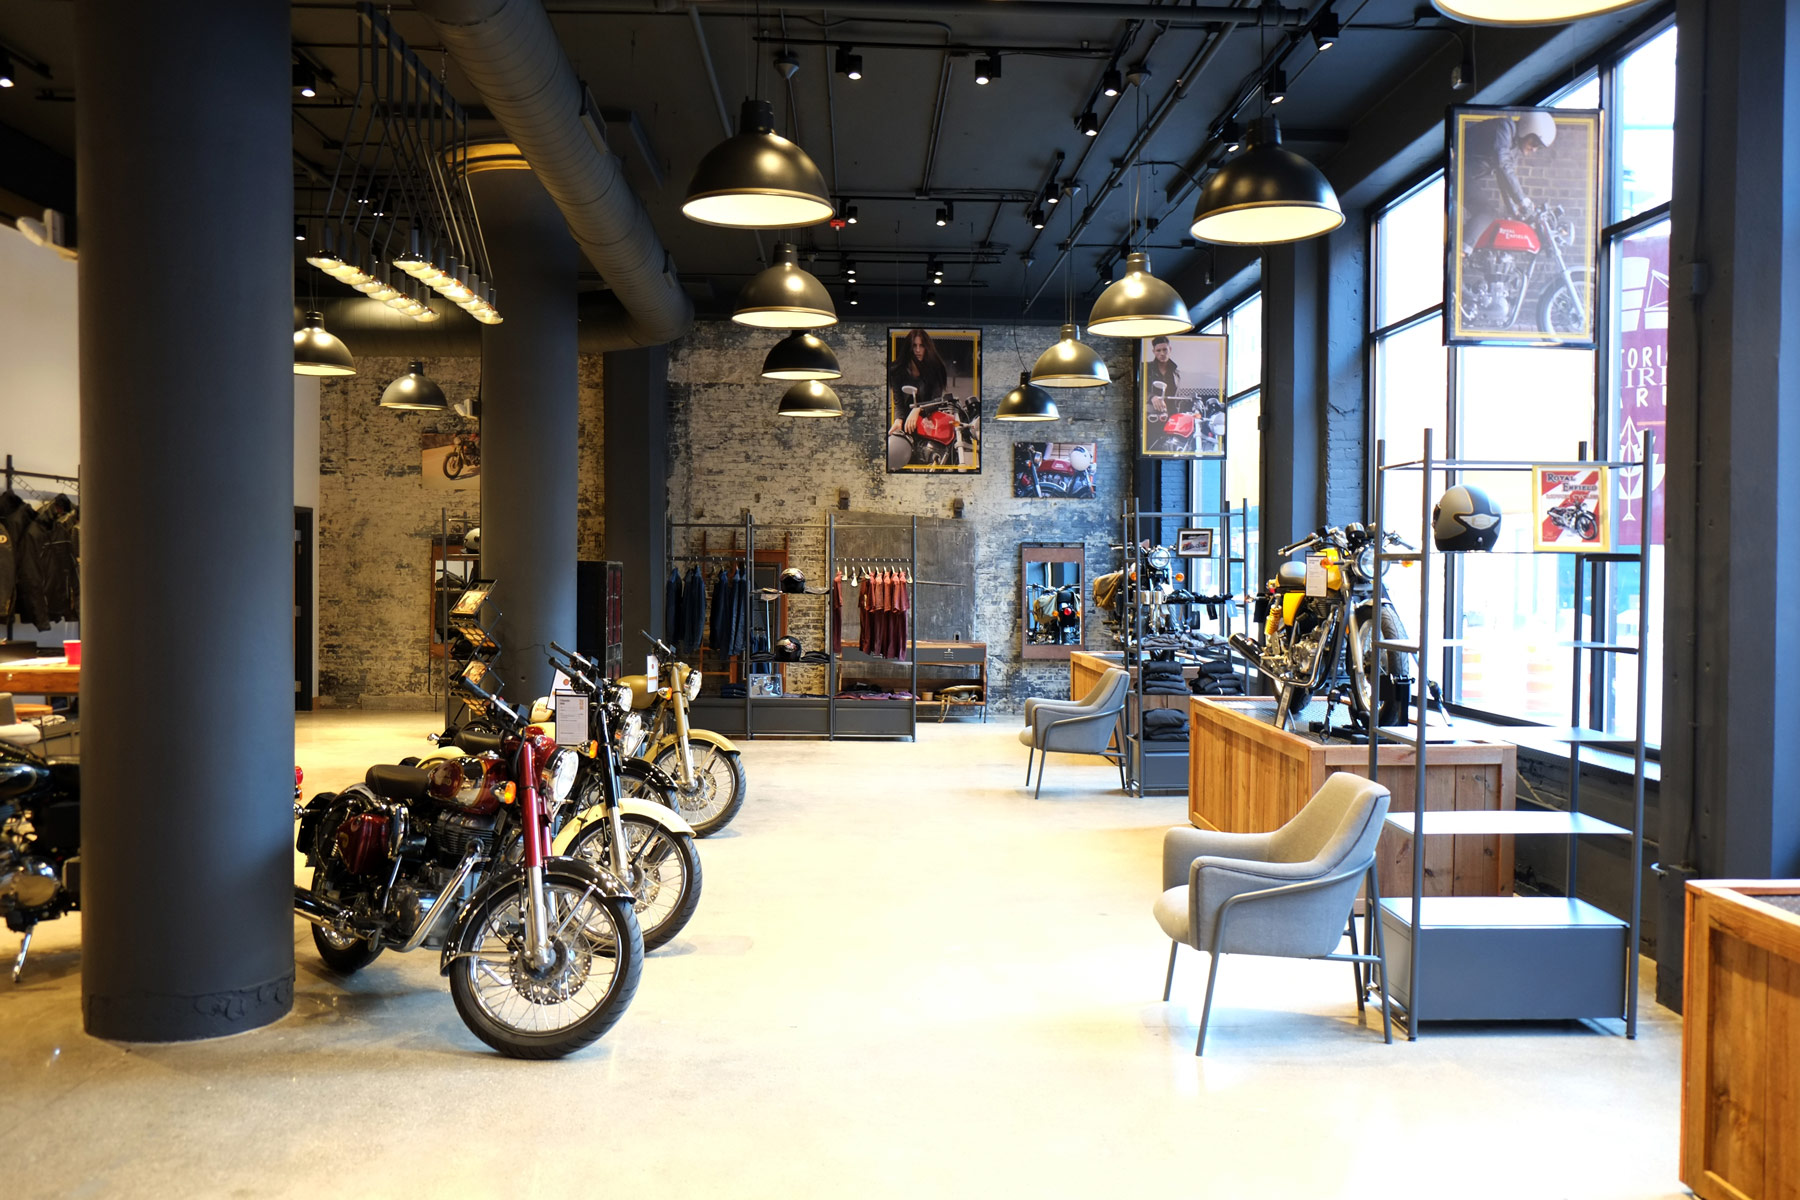 Royal Enfield Motorcyle Manufacturer Opens First US Store In Milwaukee Courtesy